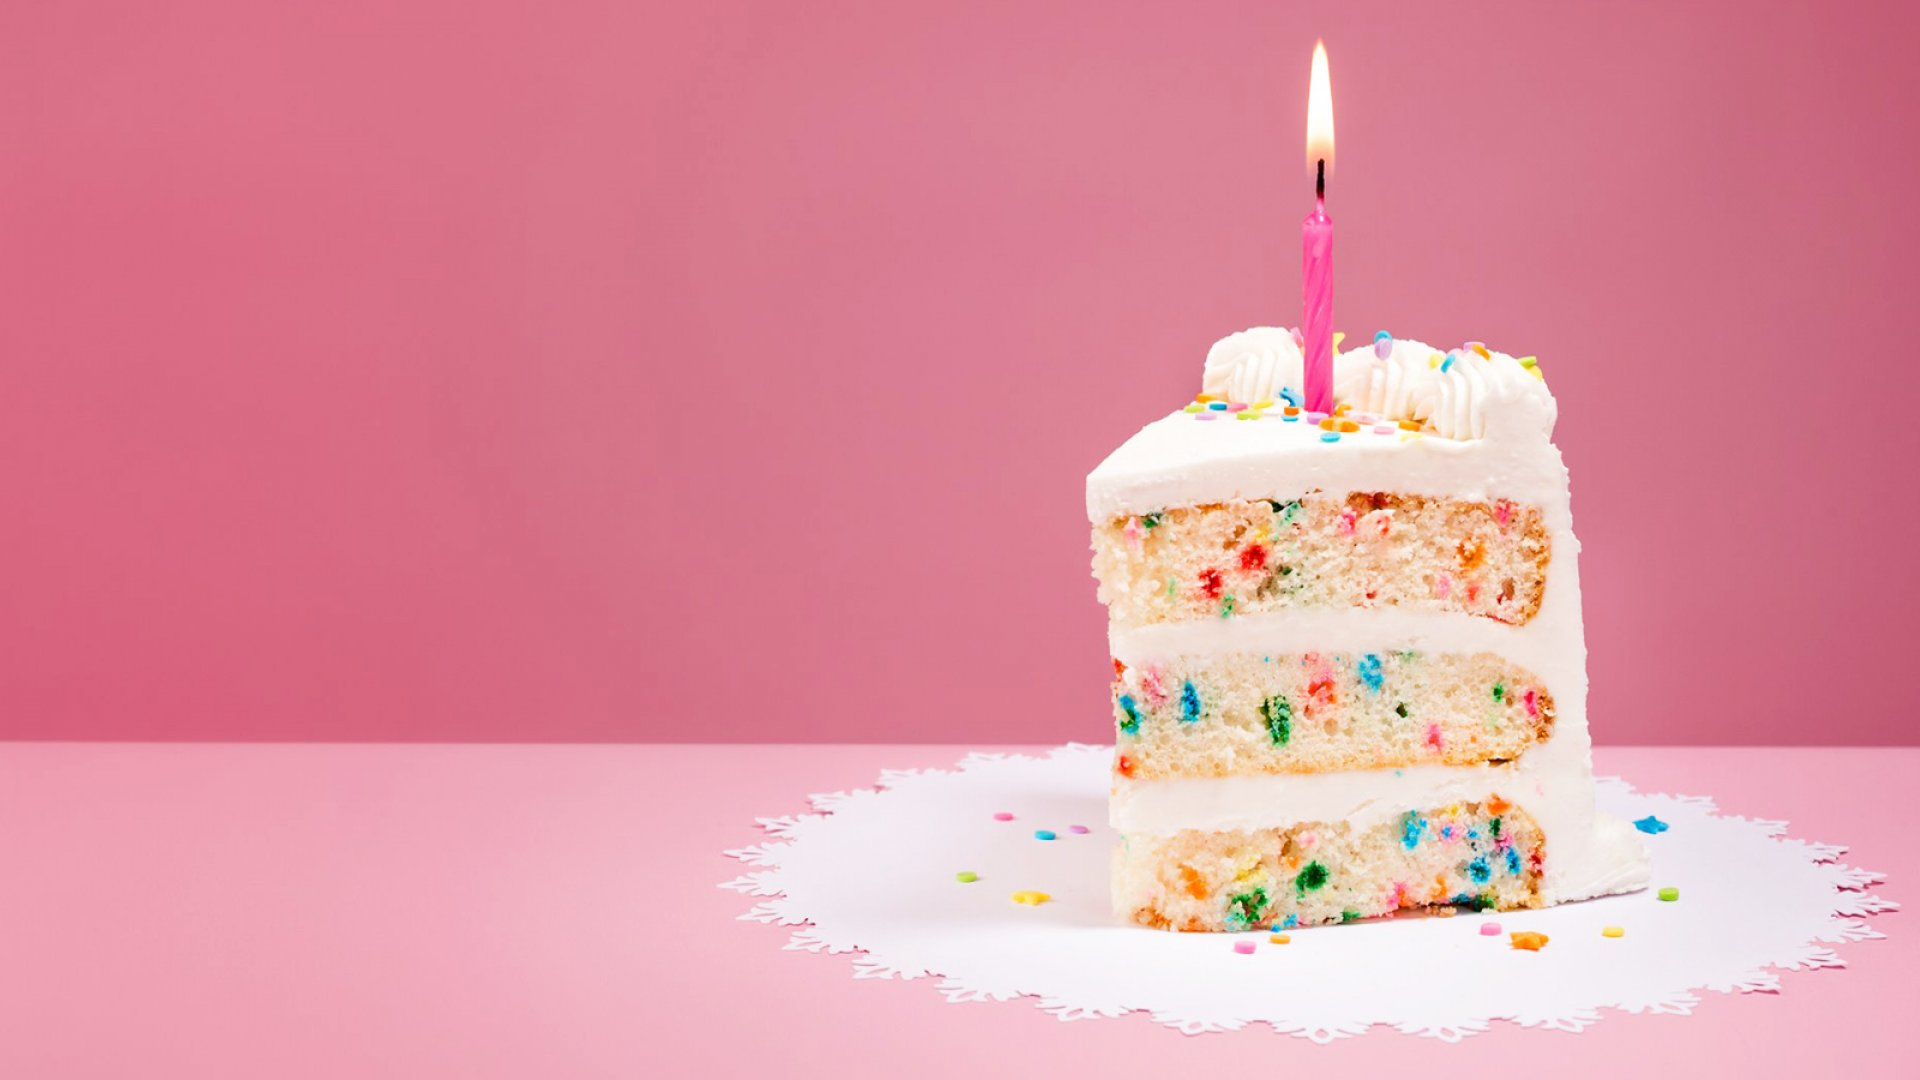 Here's How Old You Should Be When You Start a Company, According to Science. (It's Not What You Think)